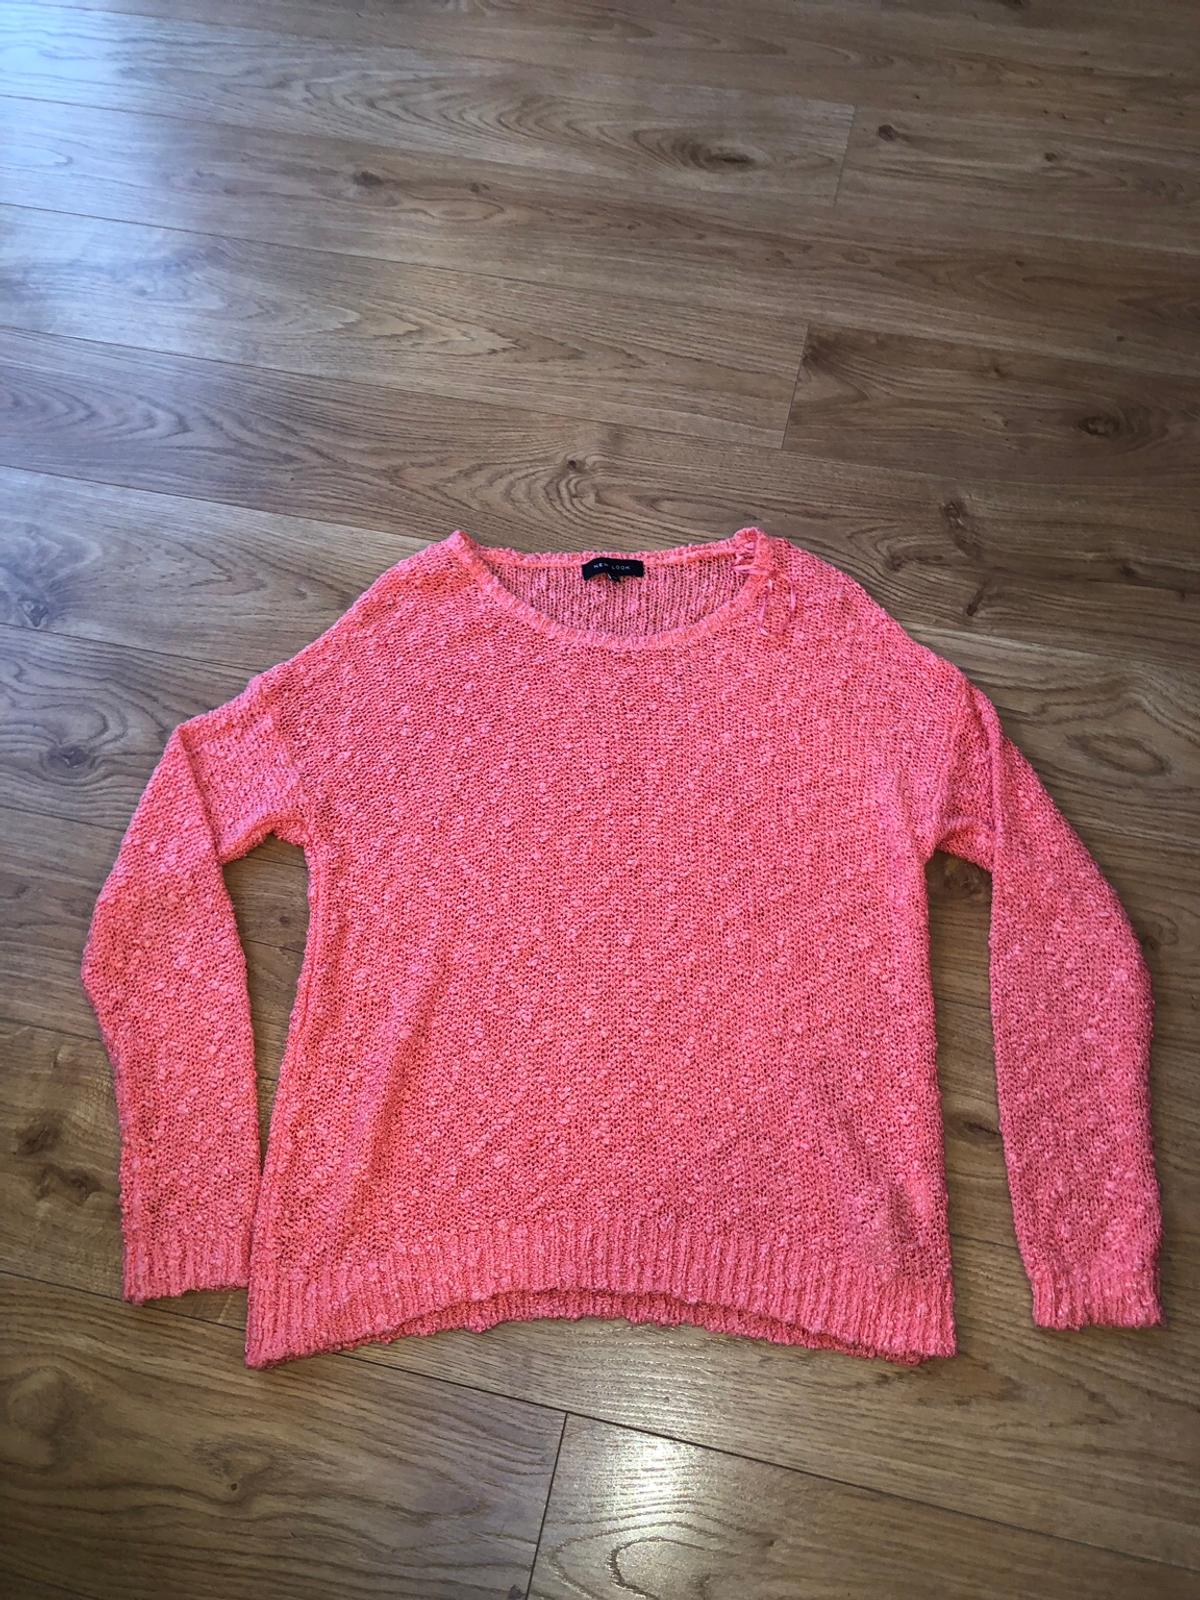 New Look coral jumper with bobbled detail in size 12.  In good condition, only worn a few times.